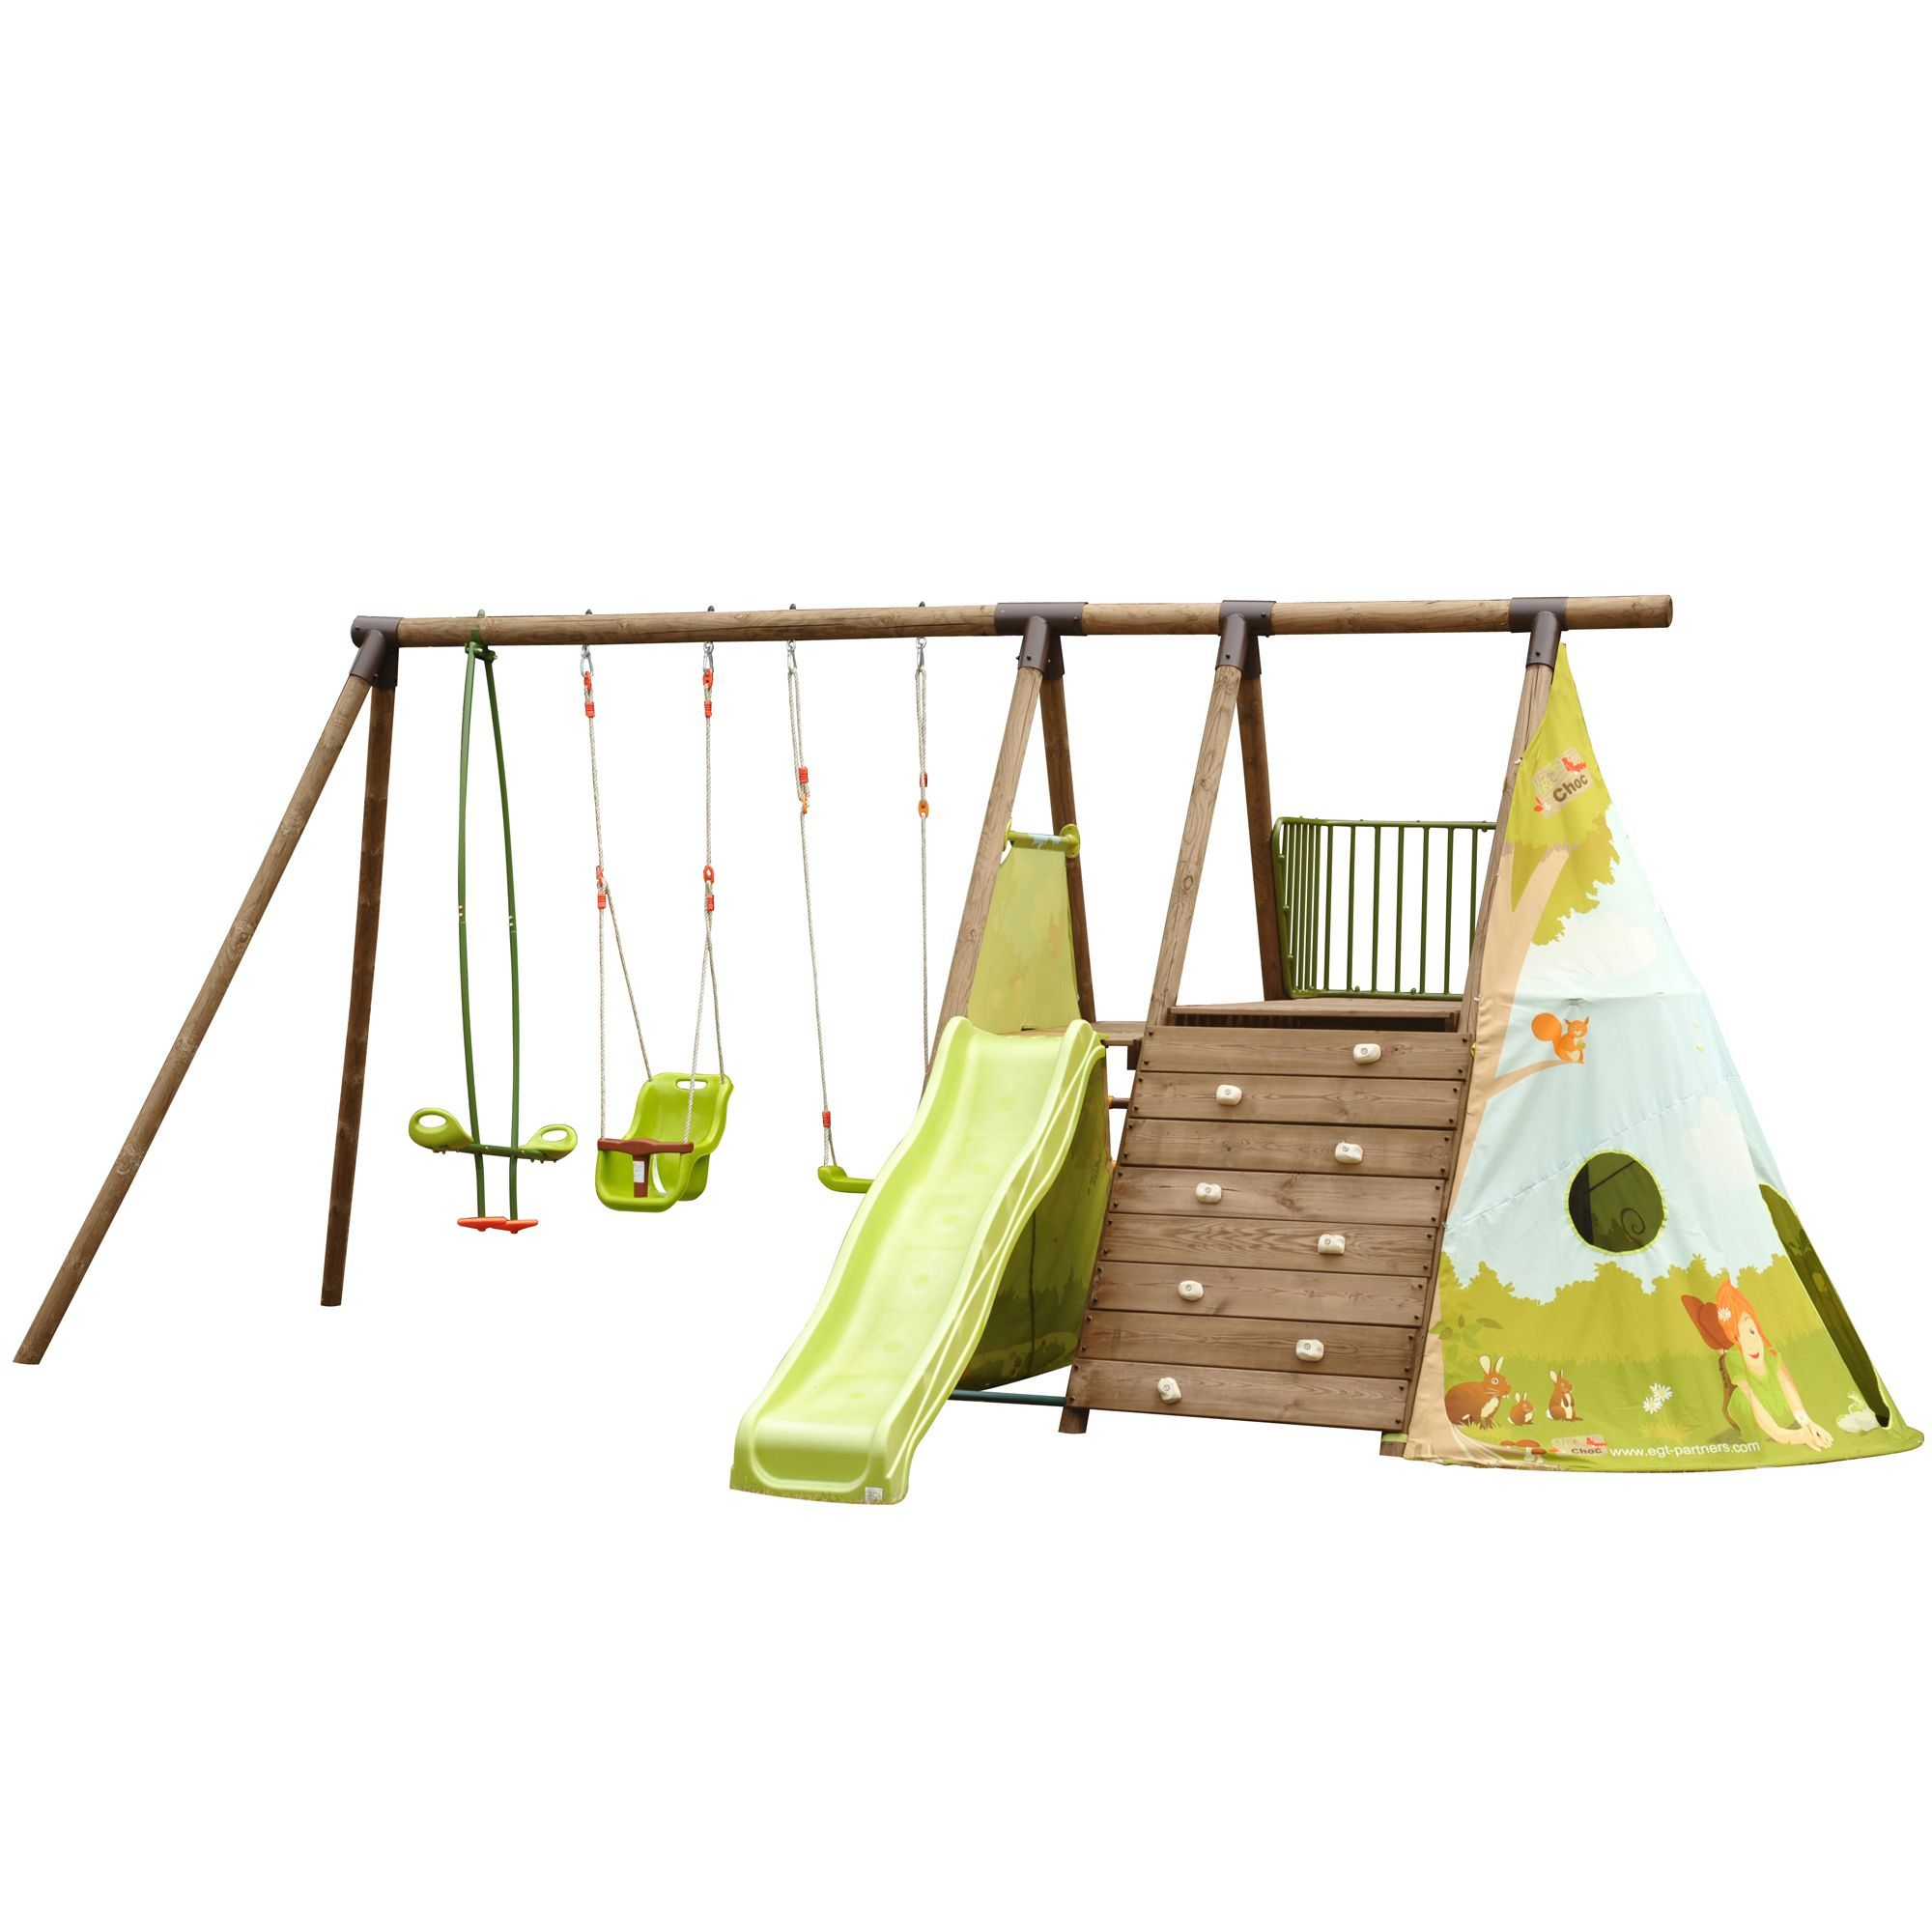 station de jeux en pin pour enfants 5 agr s tipi. Black Bedroom Furniture Sets. Home Design Ideas